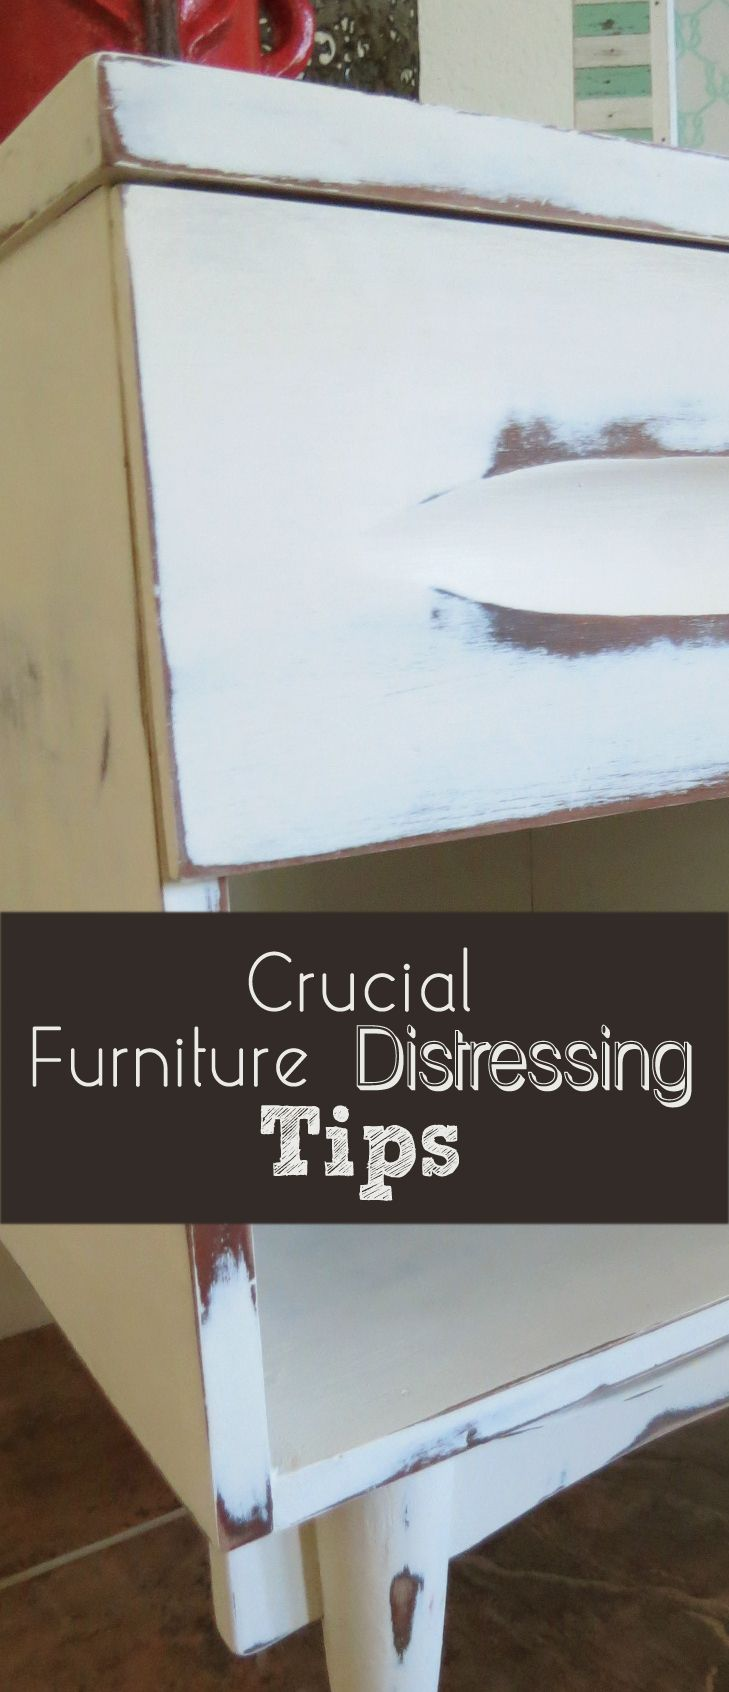 There are a few things you can do that will really help your furniture distressing job look right. Here are some of the ways it can go wrong and how to improve the finished look. 1. The Wood Showing Through Should Be Dark  Ive tried painting and distressing over